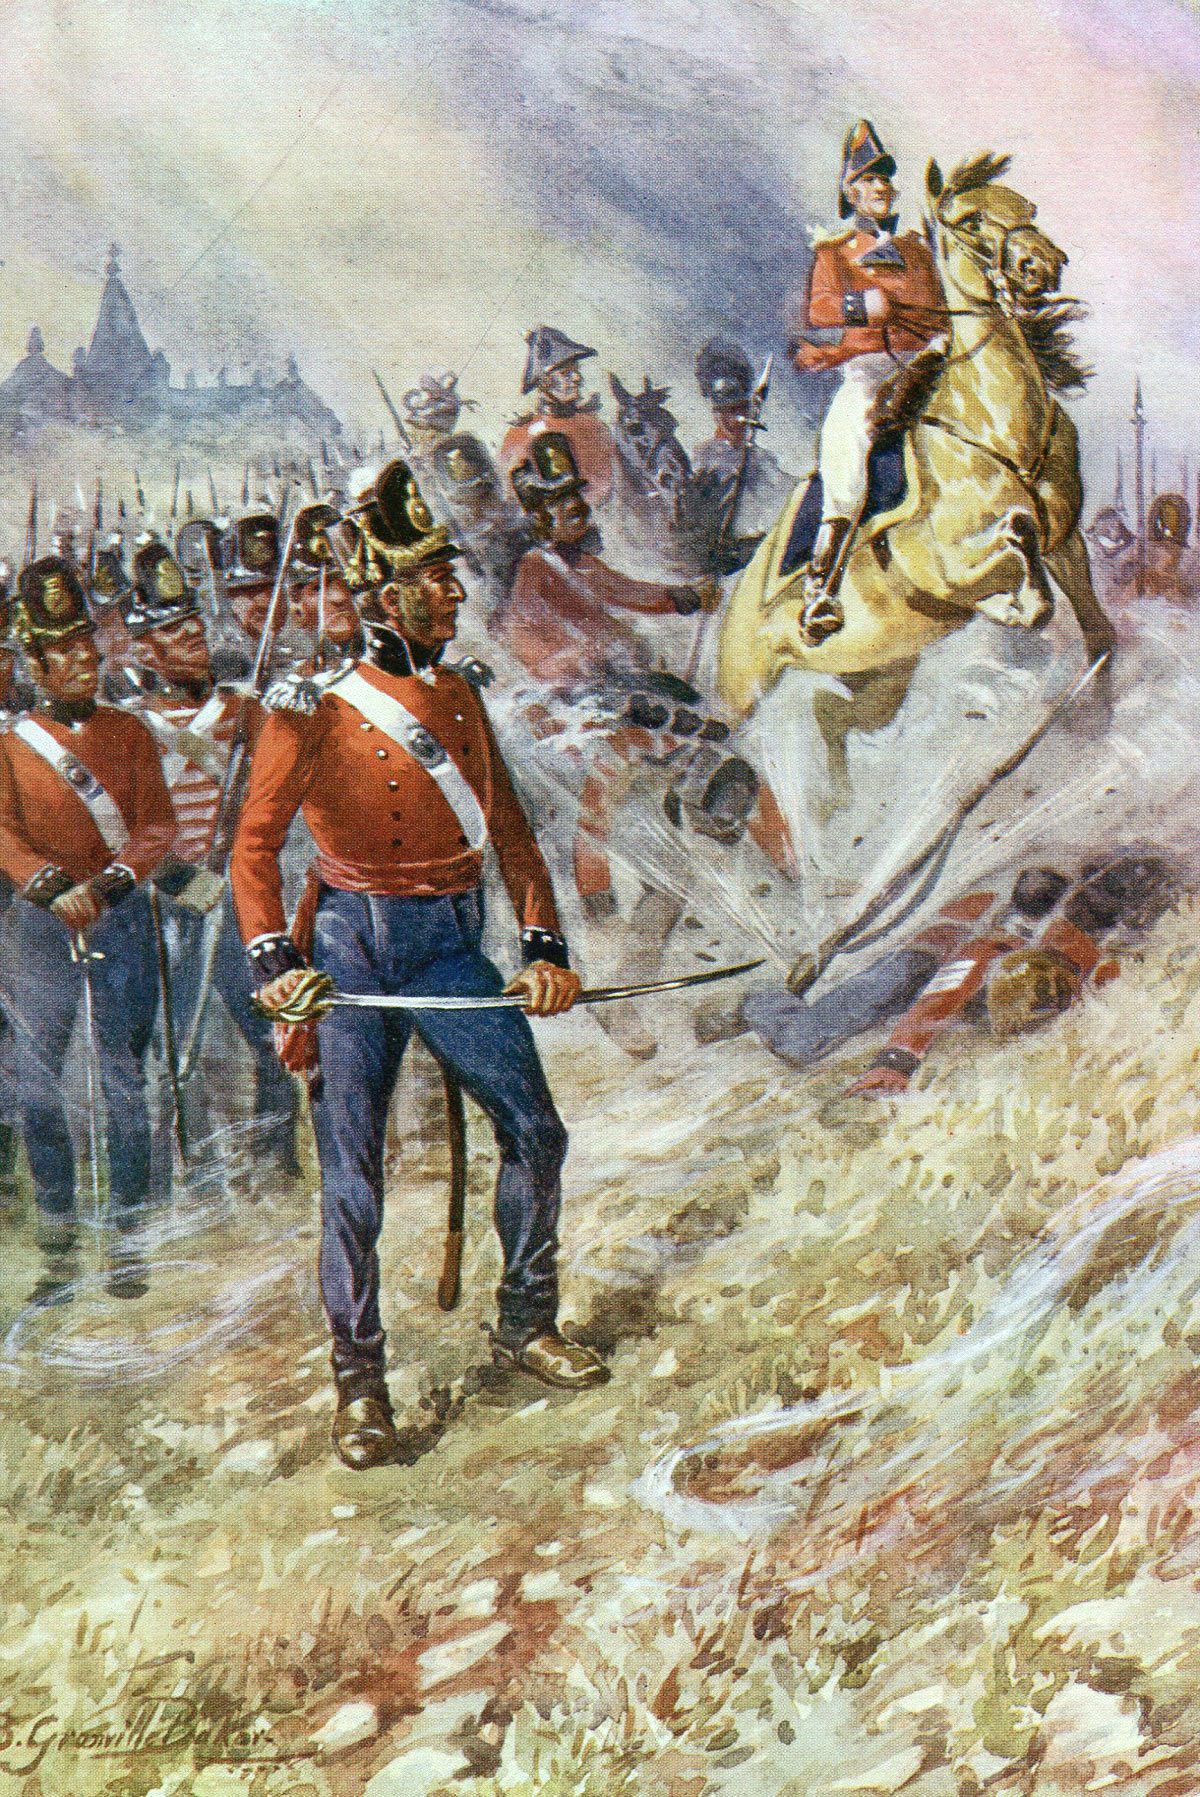 Sir John Moore and the British army at the Battle of Corunna on 16th January 1809 in the Peninsular War: picture by R. Granville Baker